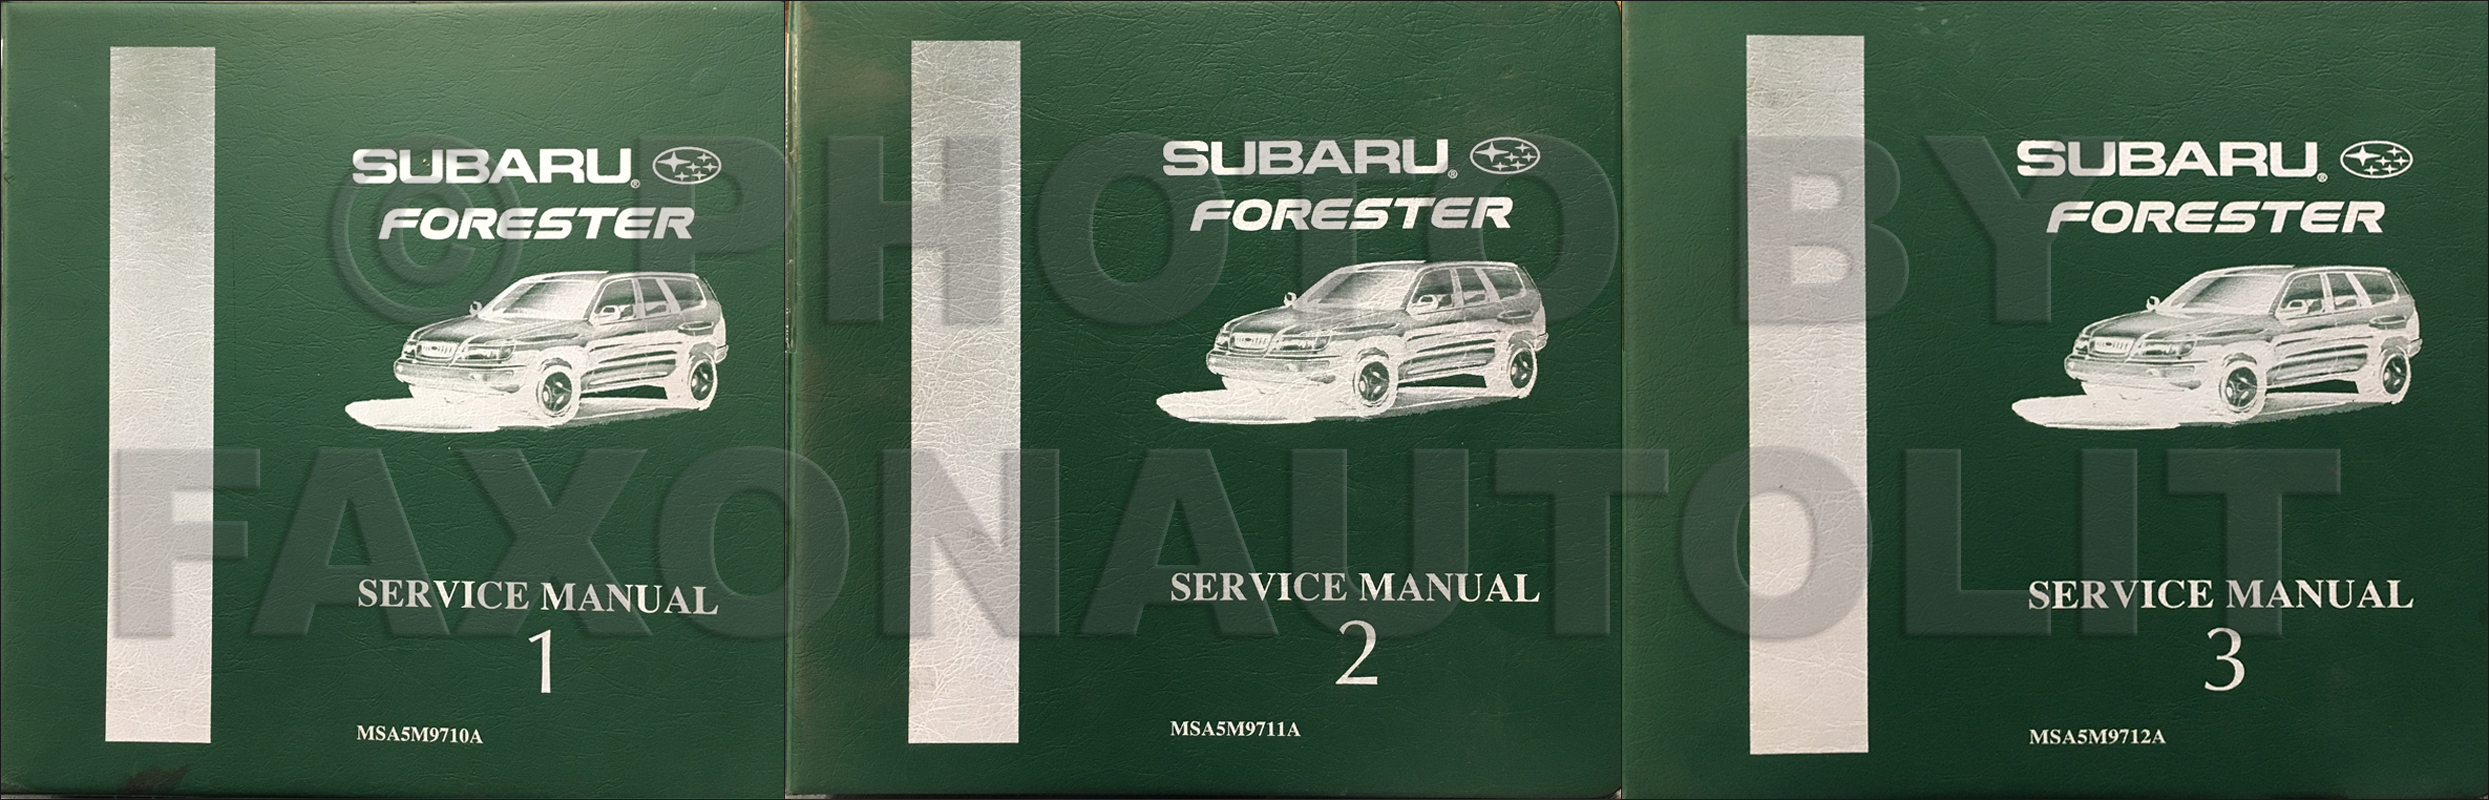 1998 subaru forester repair shop manual original 3 volume set rh faxonautoliterature com Subaru Forester Dashboard 2002 Subaru Forester Manual